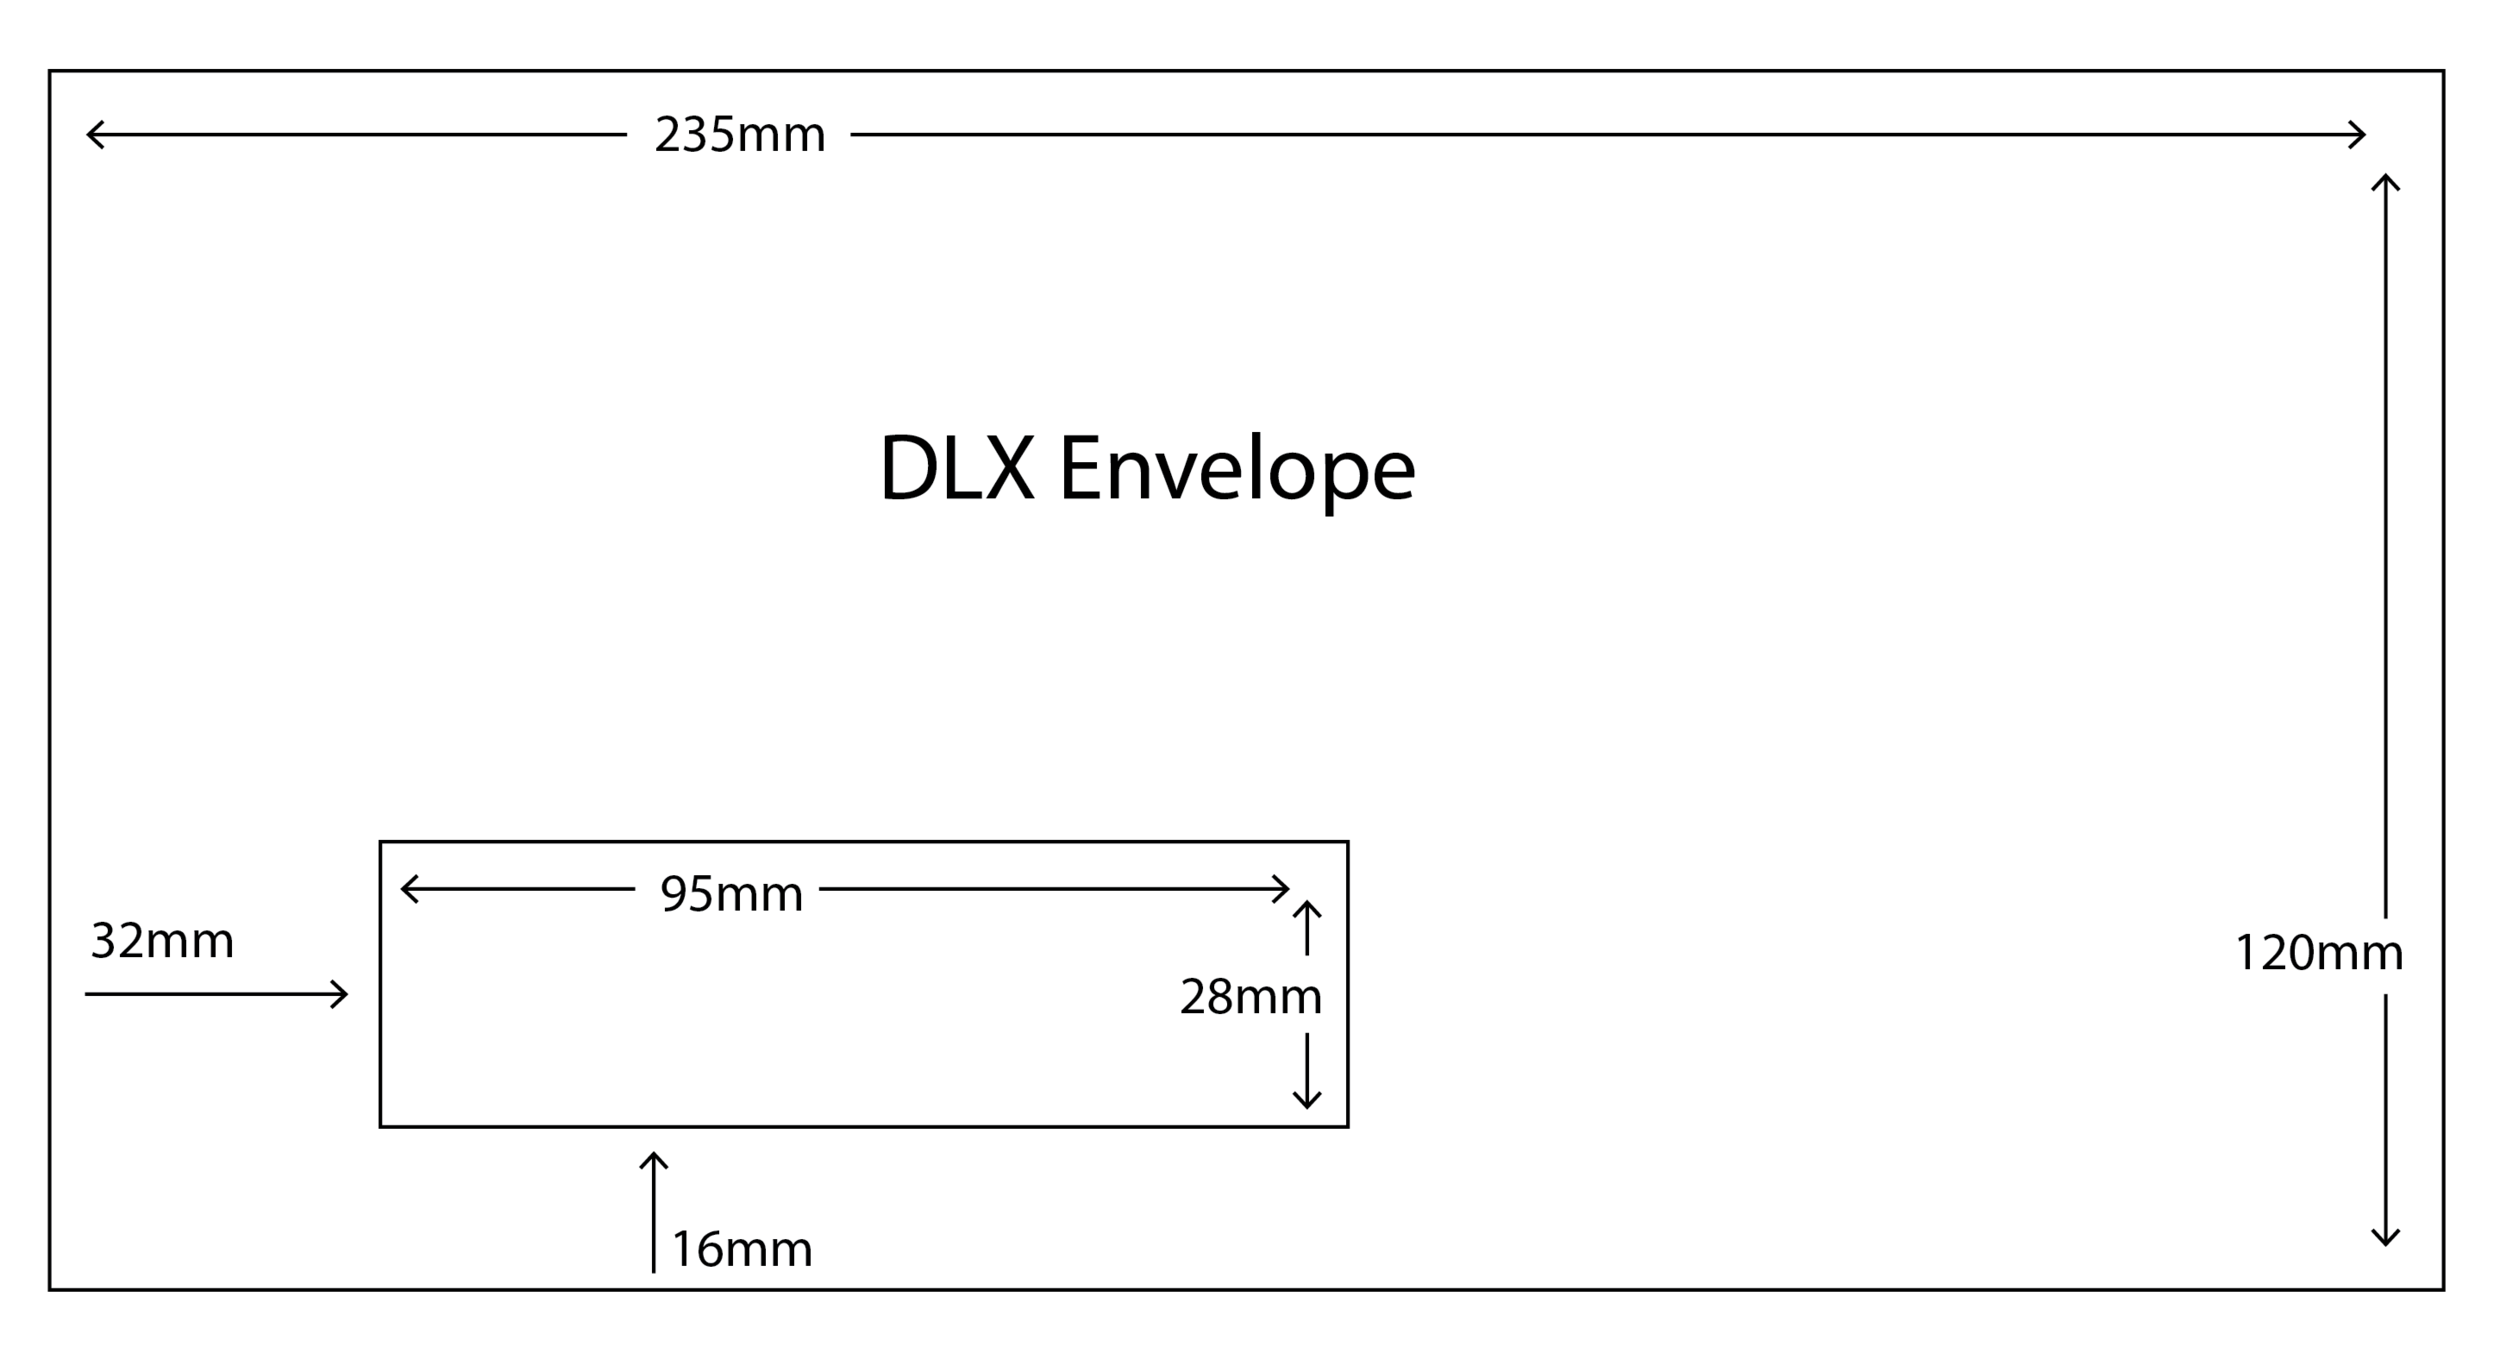 DLX Envelope with standard window size